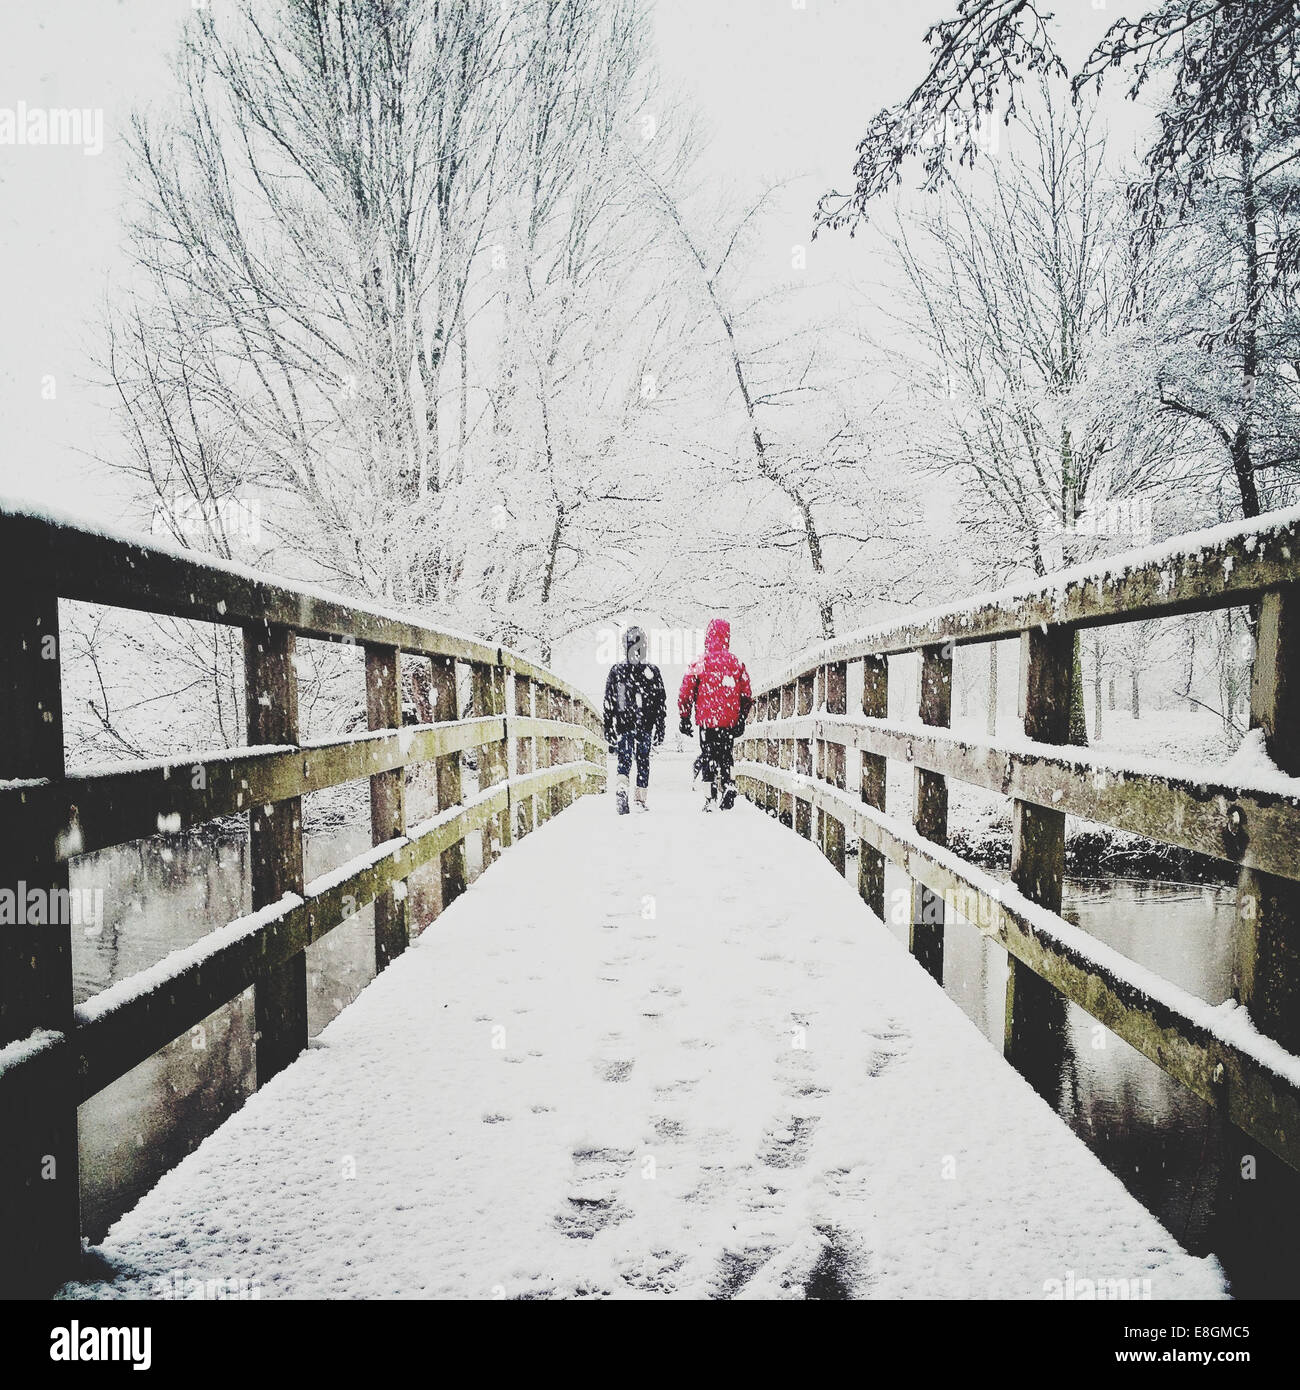 Rear view of two children walking across footbridge - Stock Image